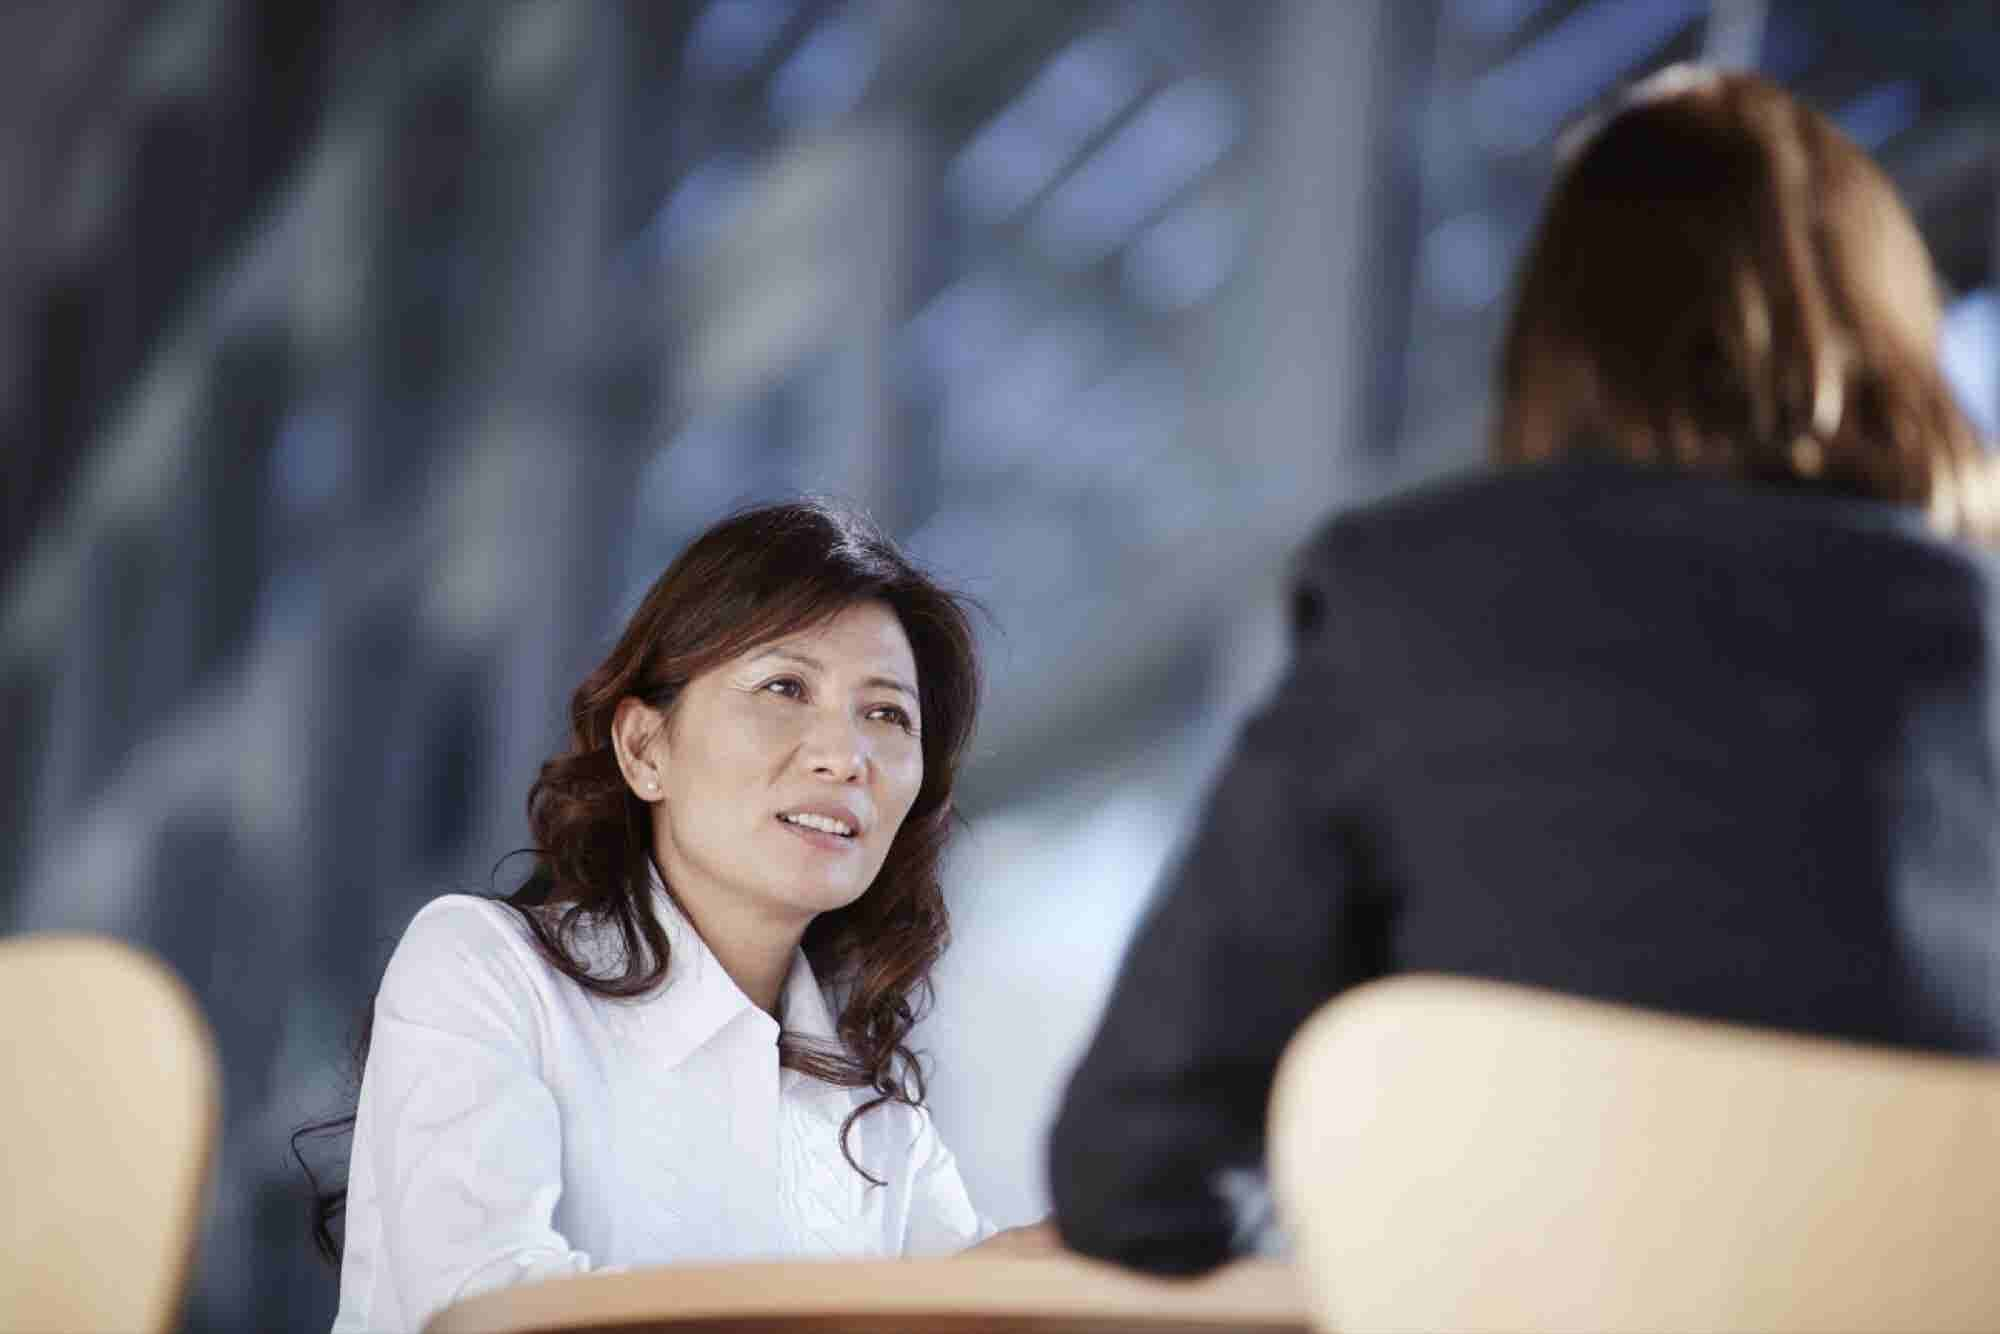 How to Break Up With Your Business Partner the Right Way